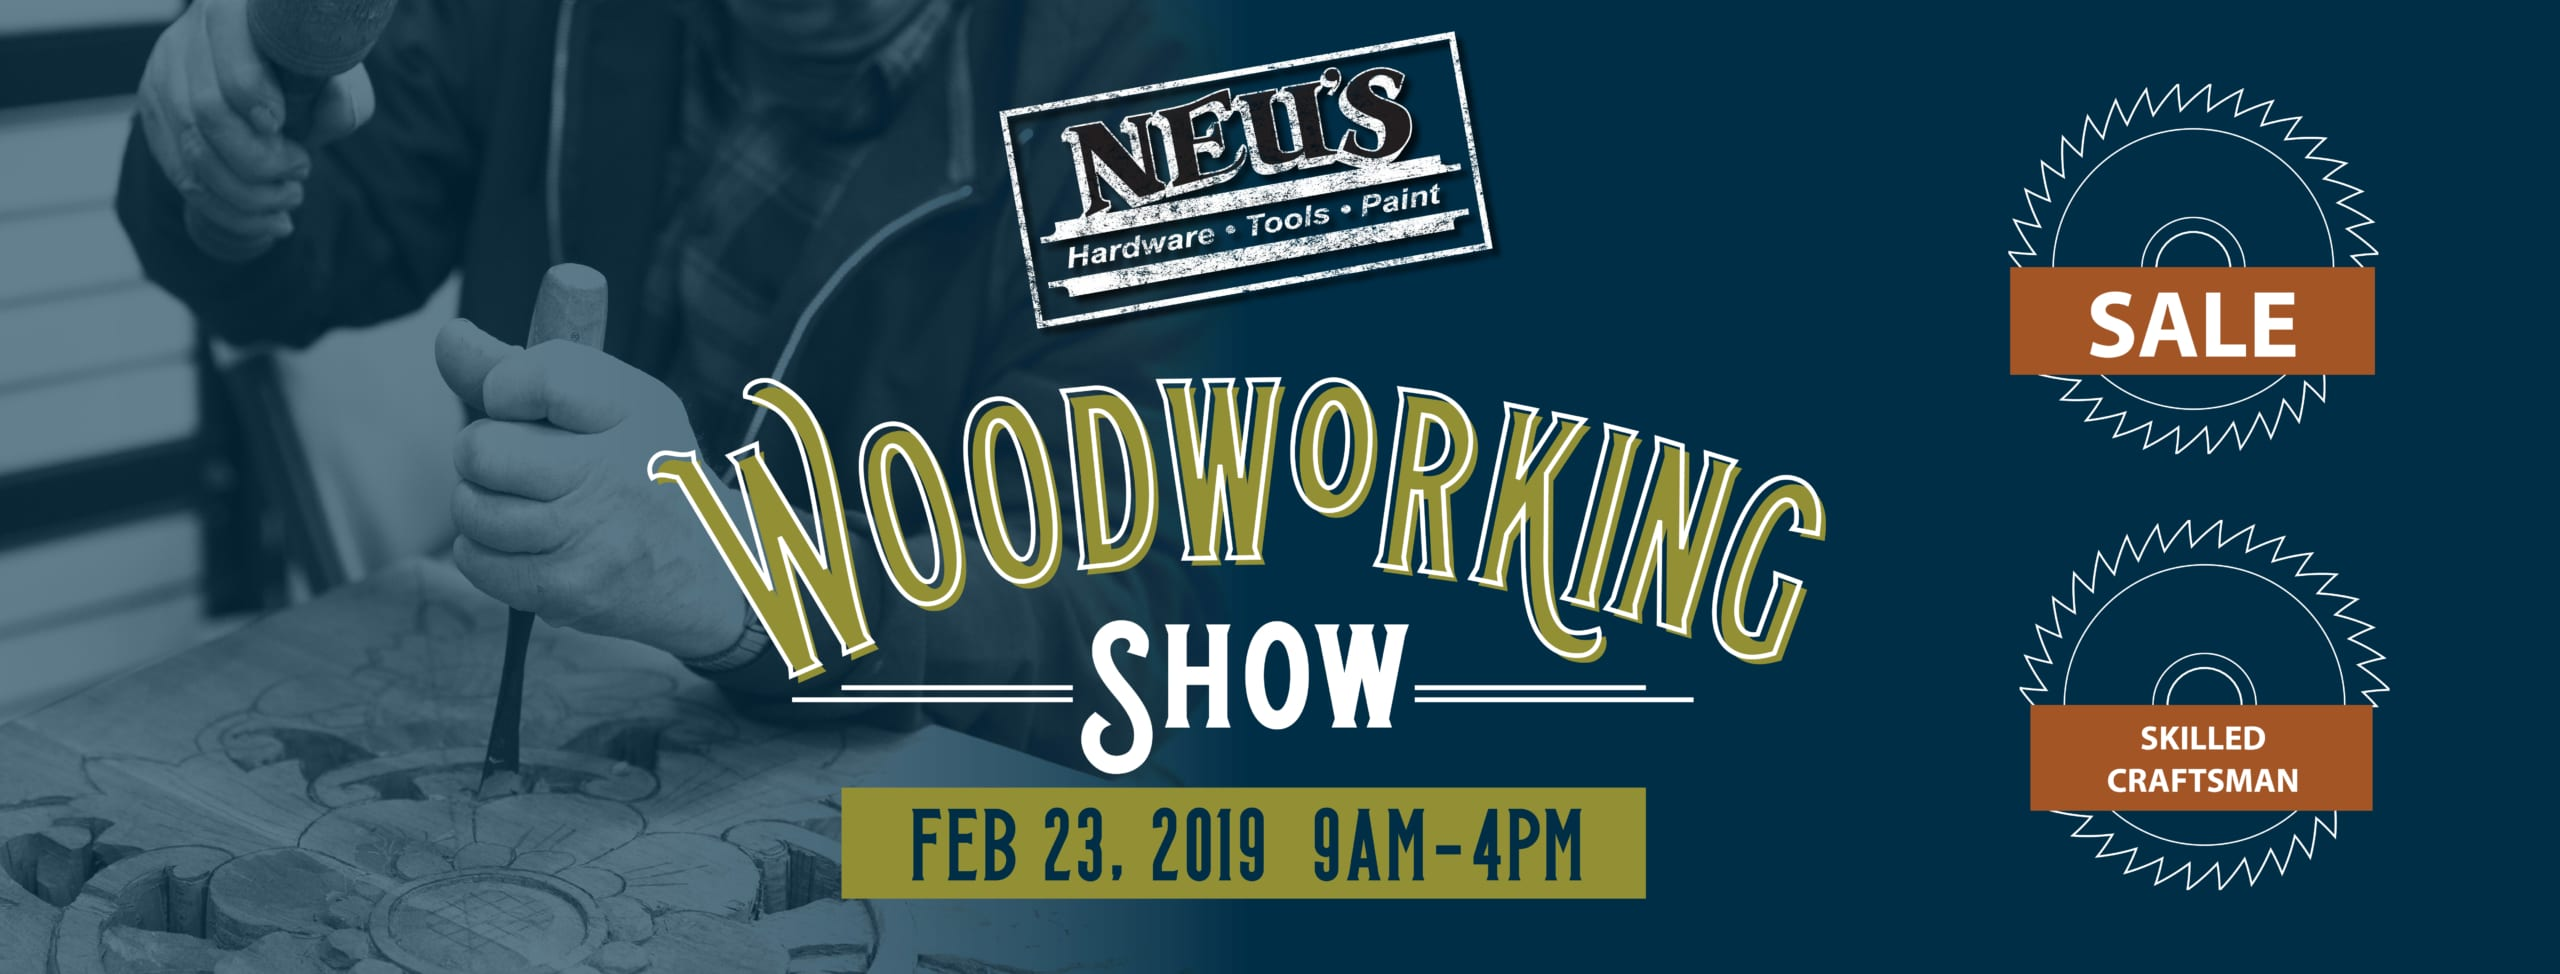 Neu's Woodworking Show 2019